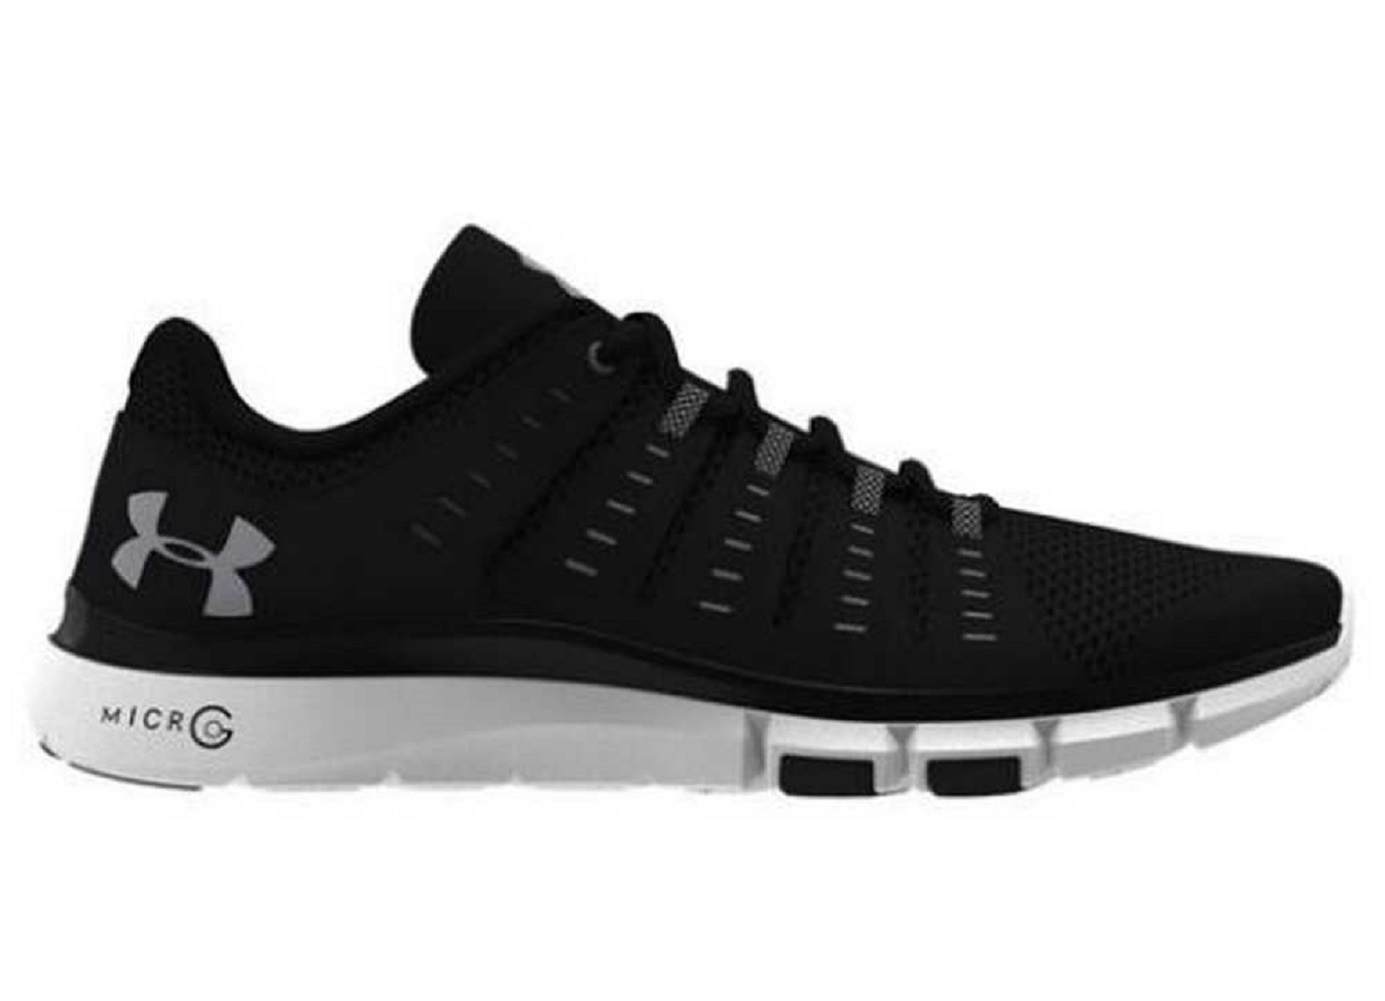 Under Armour Micro G Limitless Mens TR